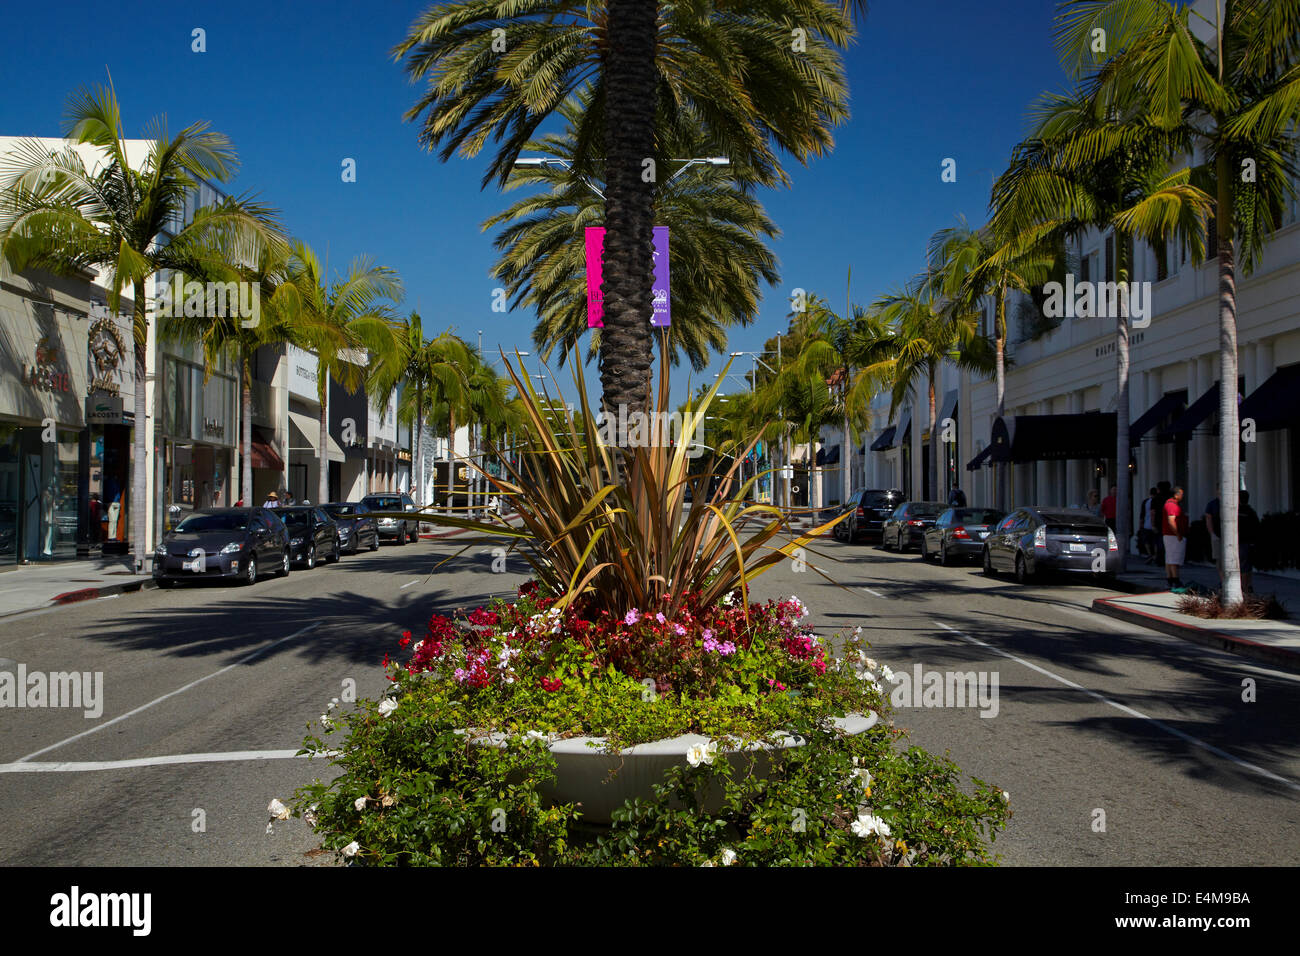 palm trees on rodeo drive luxury shopping street in beverly hills stock photo 71746510 alamy. Black Bedroom Furniture Sets. Home Design Ideas